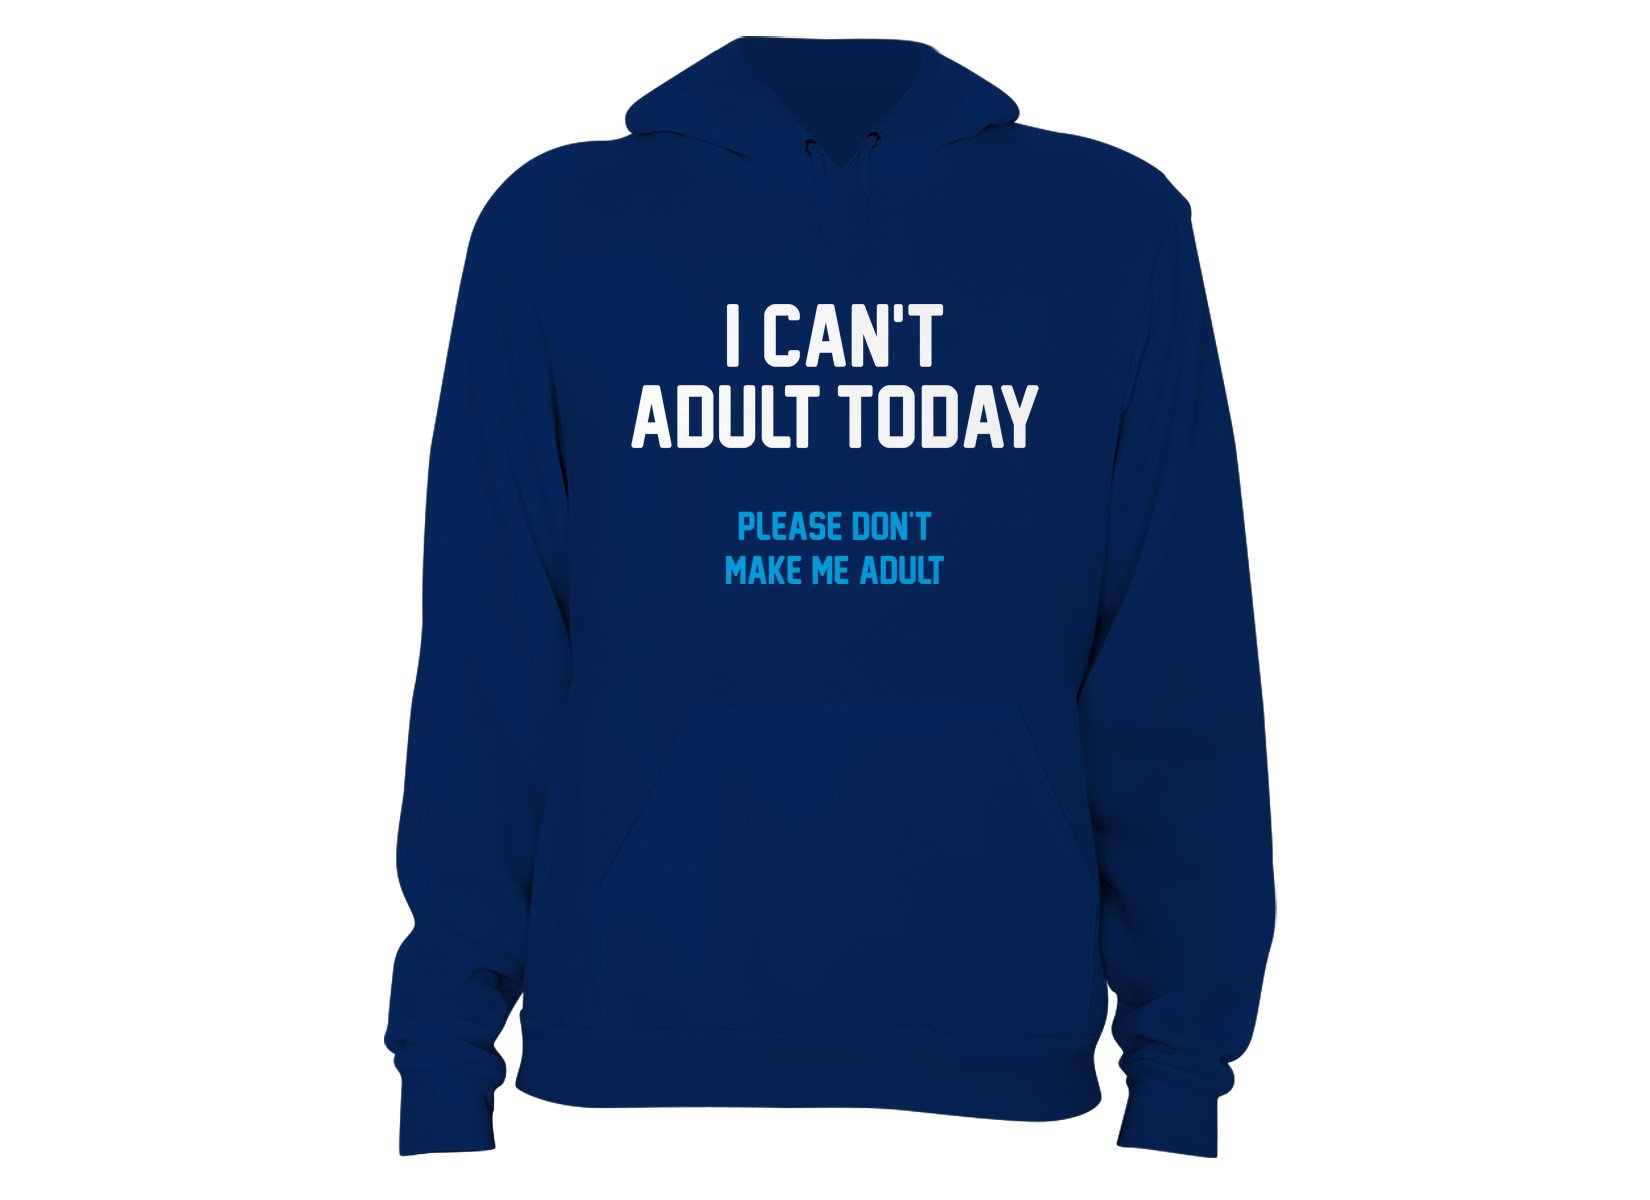 I Can't Adult Today on Hoodie